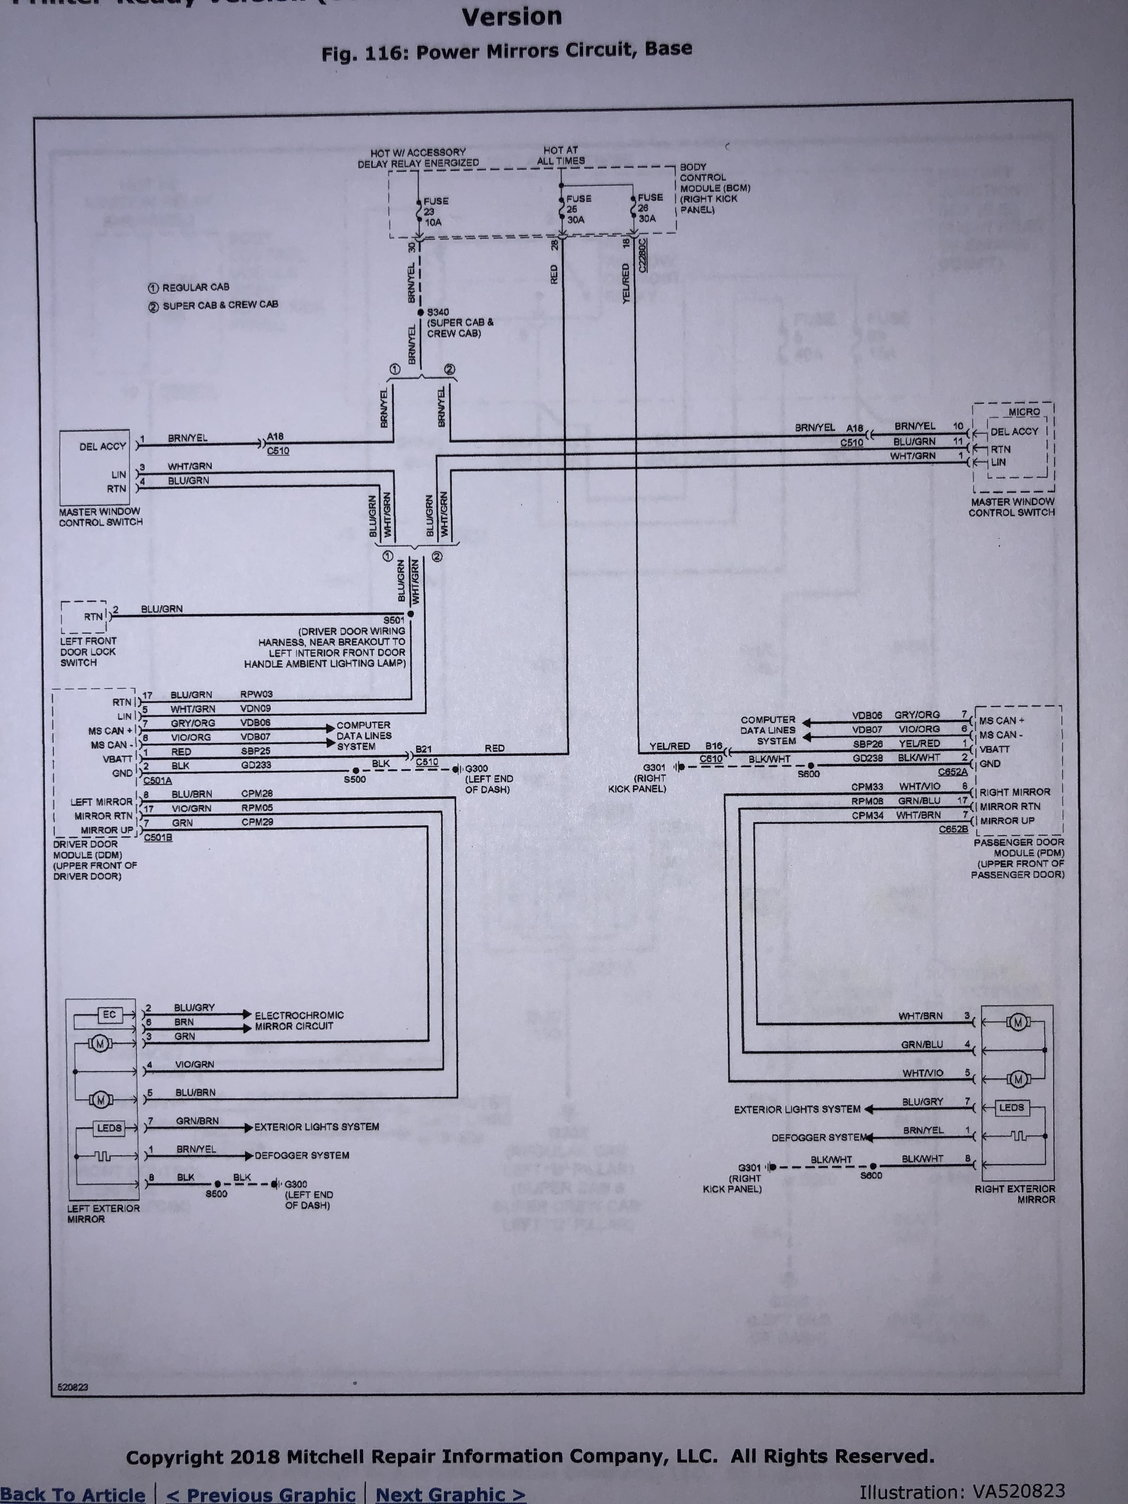 Auto Dimming Mirrors Ford F150 Forum Community Of Truck Fans Wiring Diagram For 2006 Harness In Drivers Side Dash My Notes Not Clean But Has All The Info 2018 Xl Diagrams Are A 2017 Since They Havent Released To New Drawings Yet